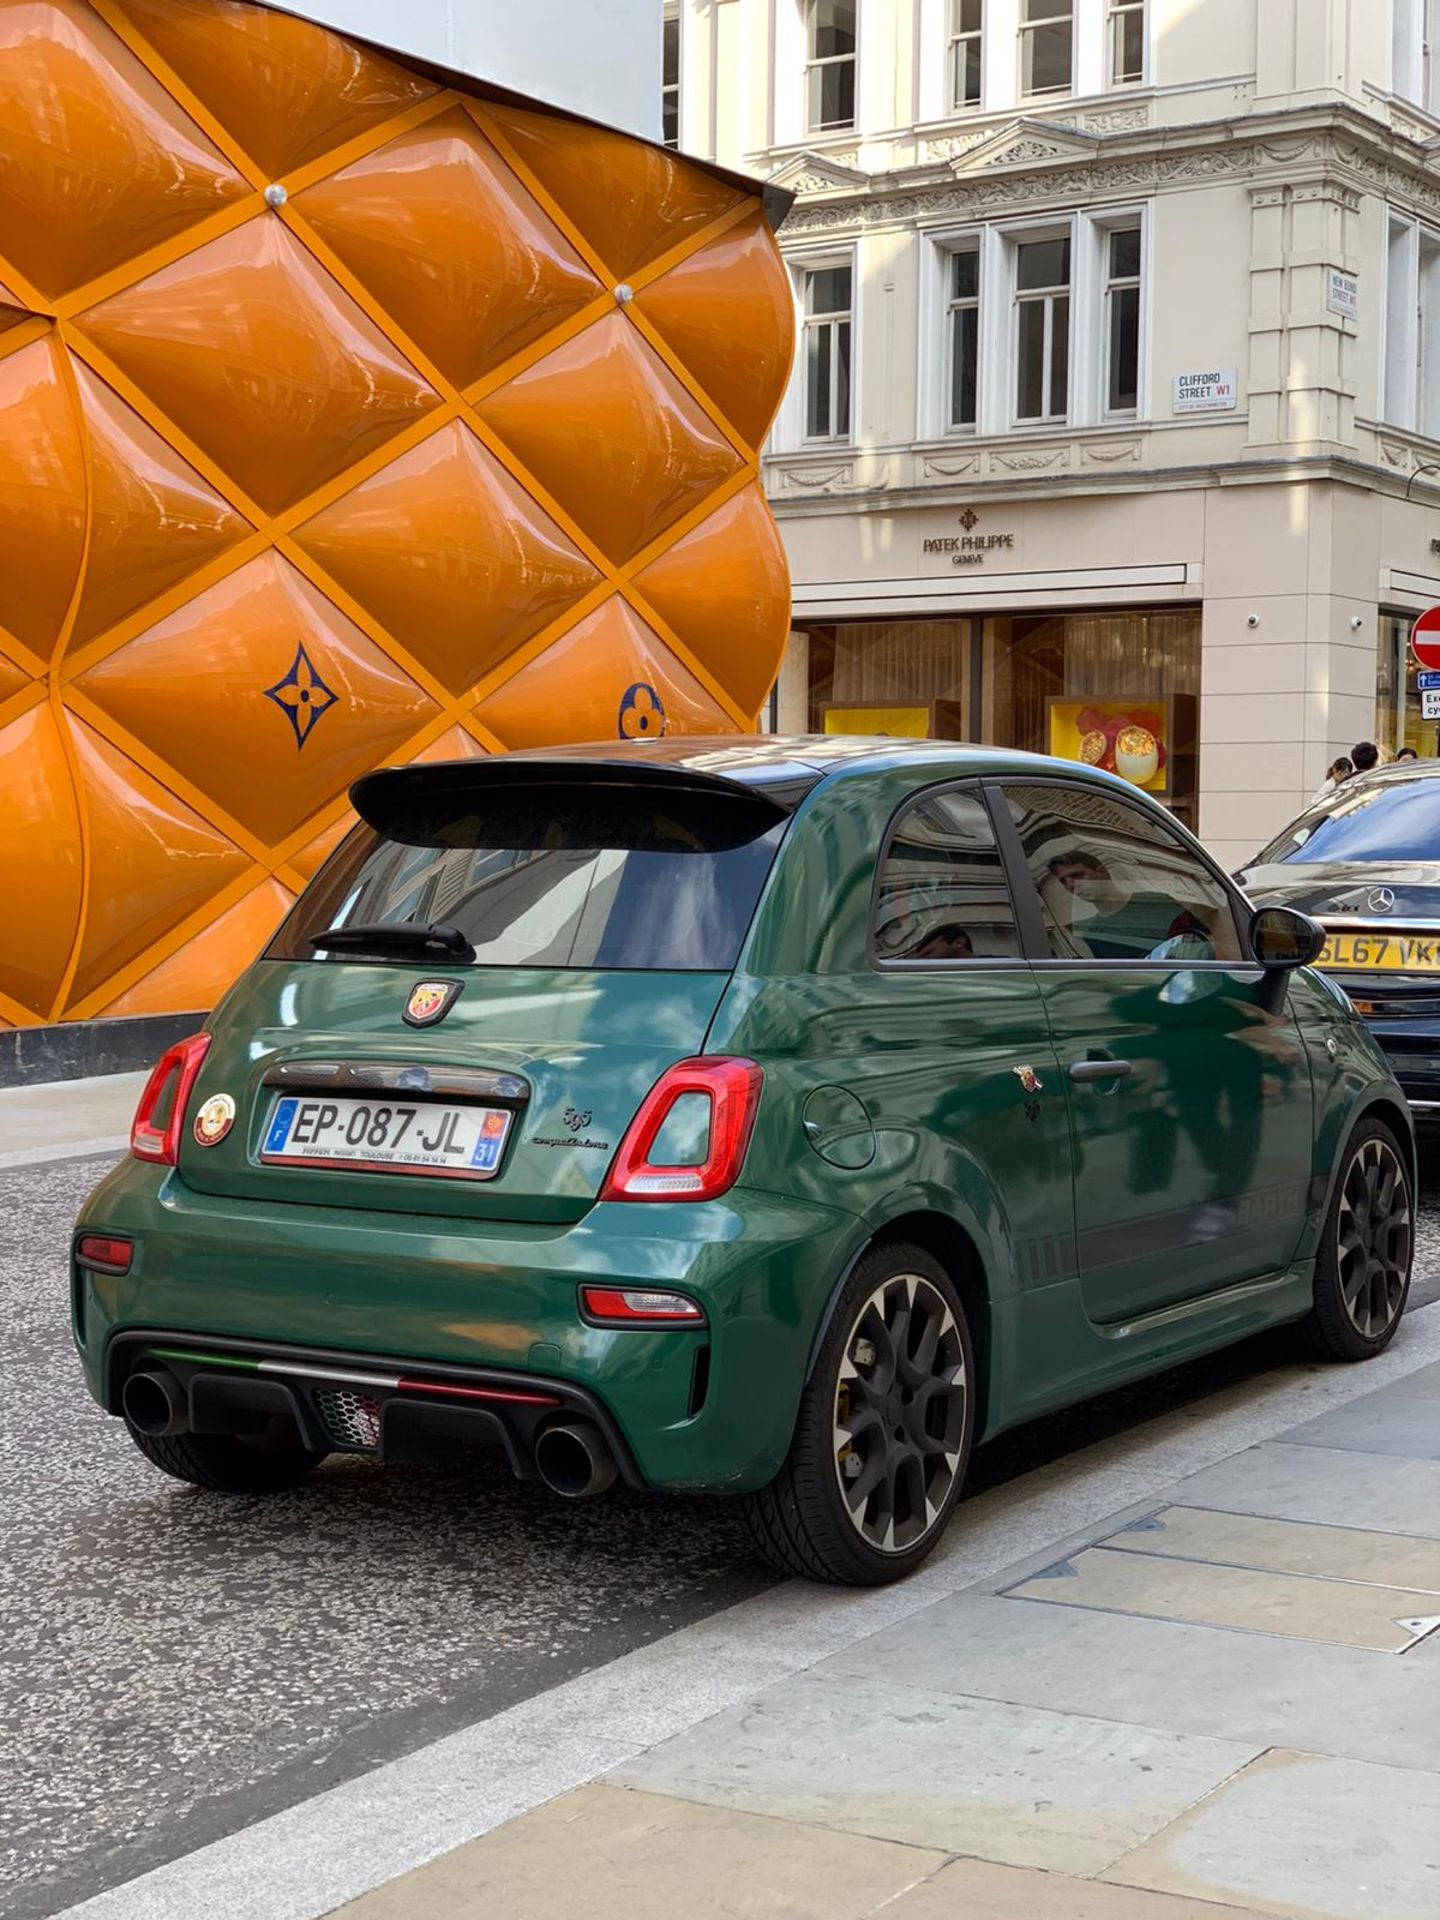 Lot 174 - ABARTH 595 COMP 2016, 10,000 MILES NO ACCIDENTS, CUSTOM EXHAUST, WRAPPED DARK GREEN, FRENCH PLATES